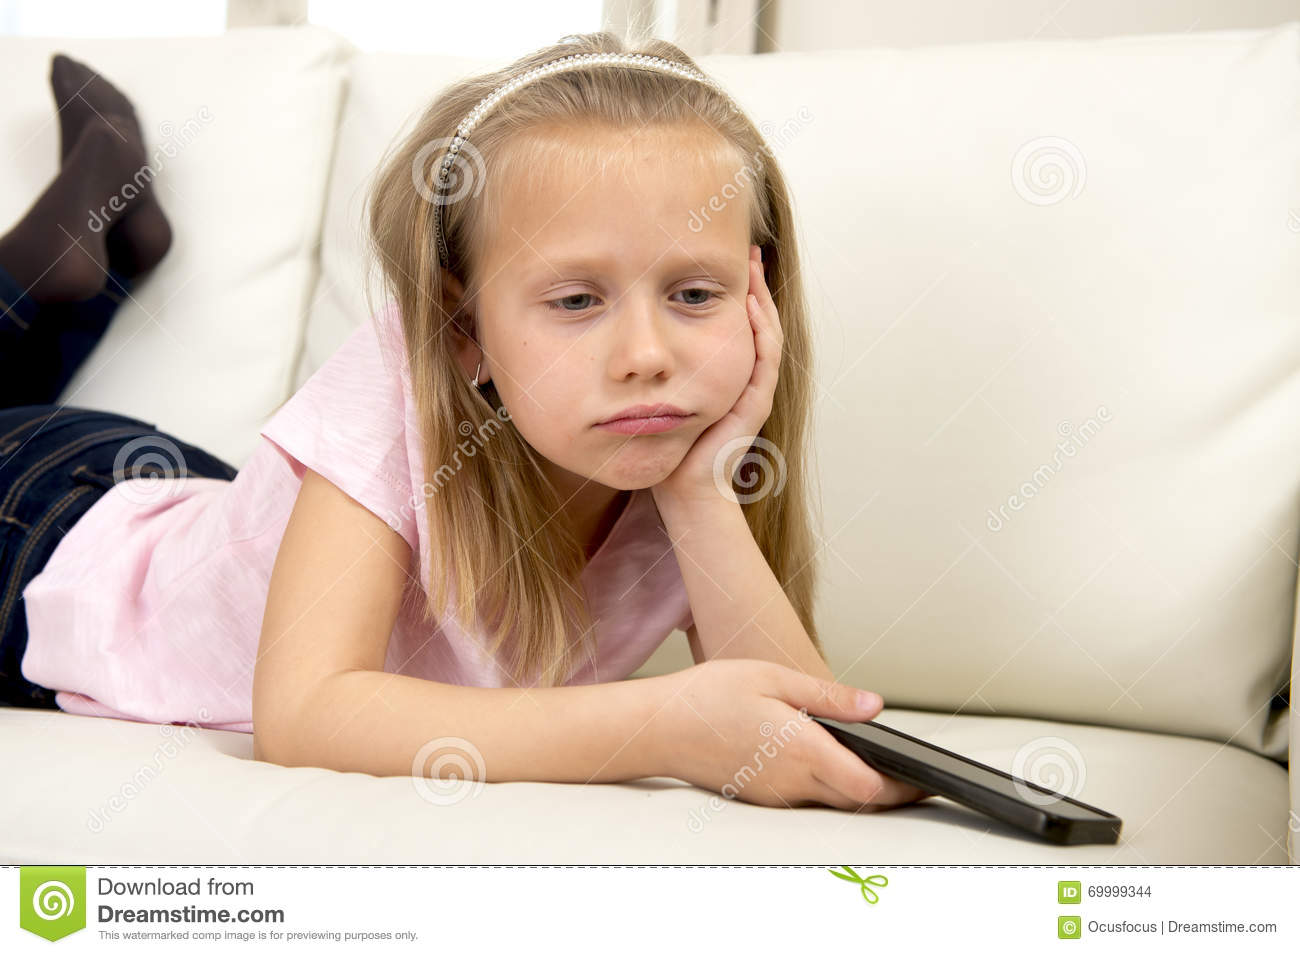 eb6f5fdff Bored and tired blond little girl on home sofa using internet app on mobile  phone